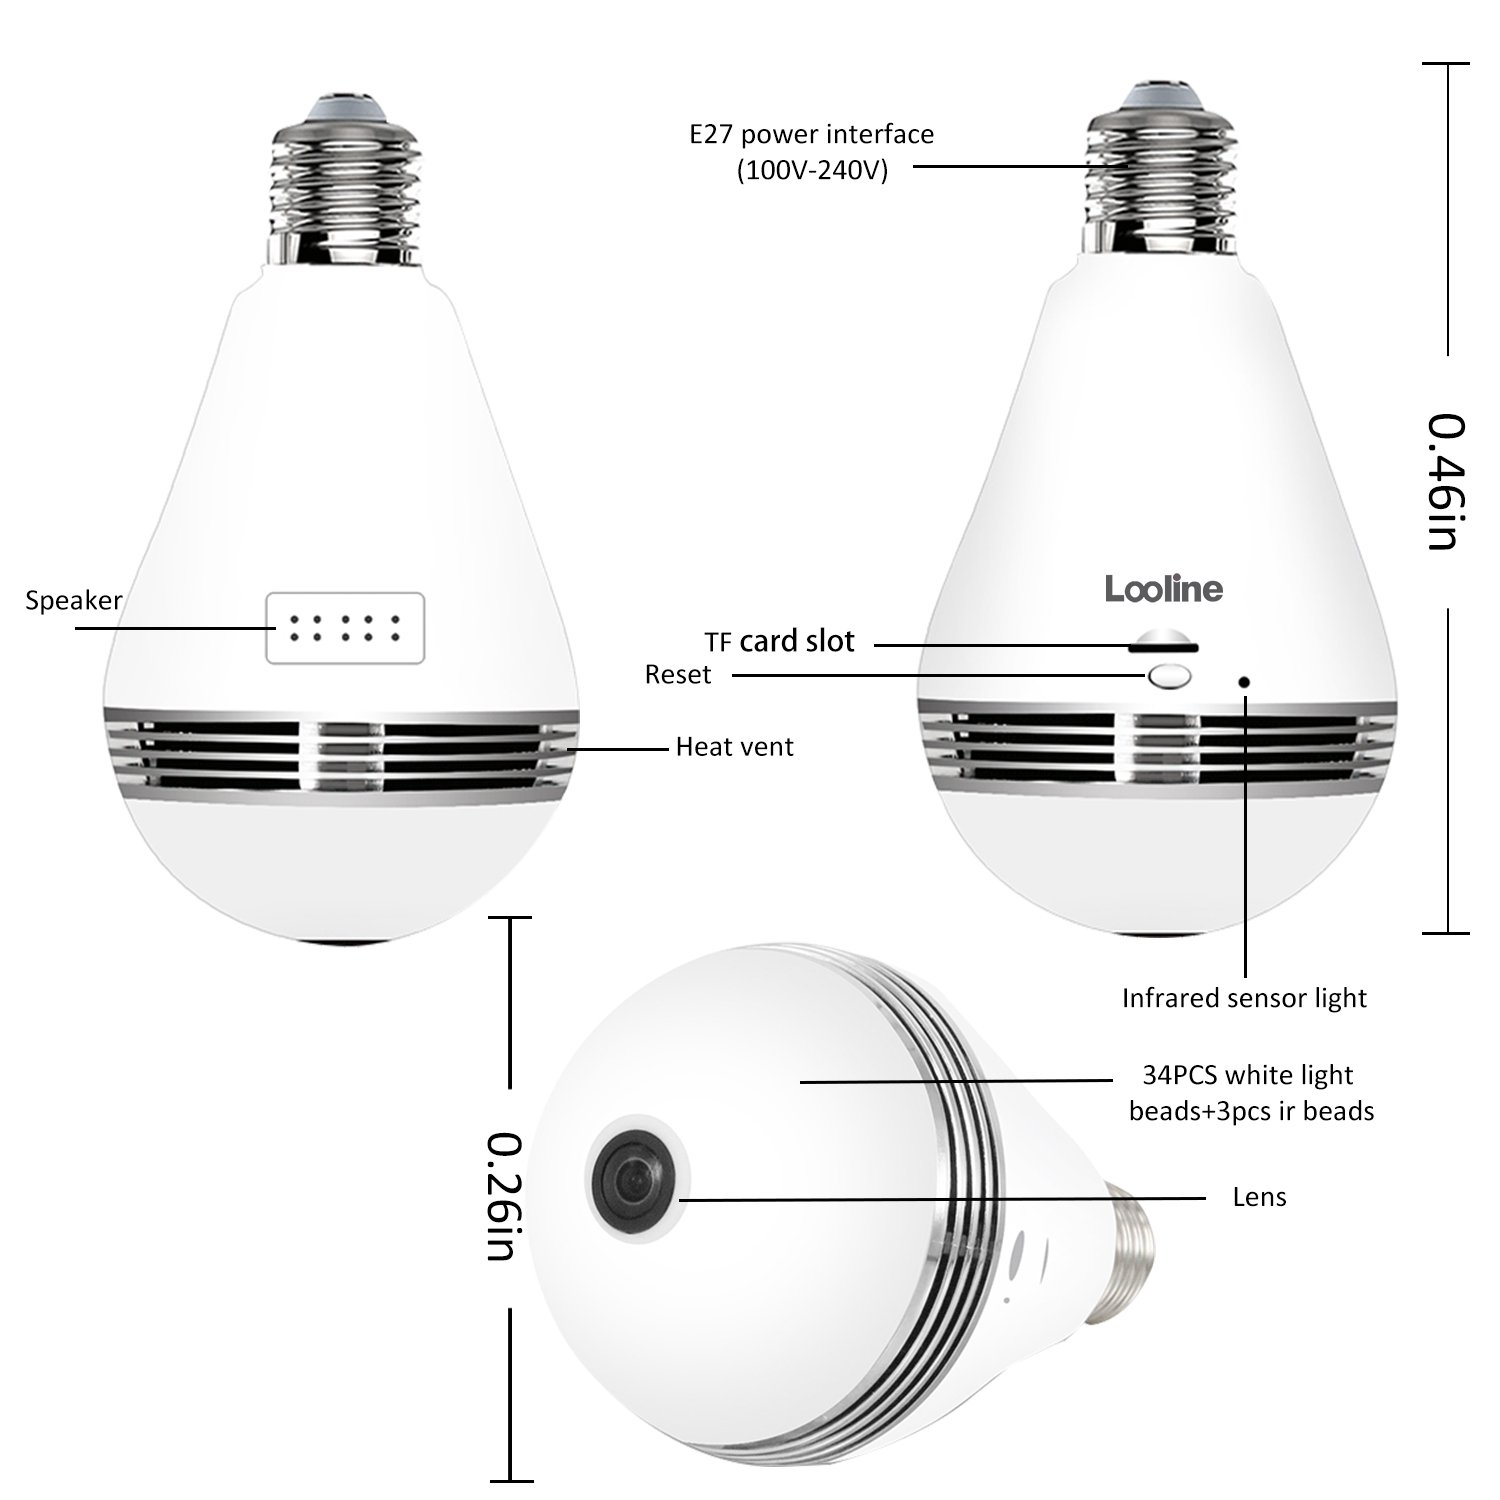 Light Bulb Camera VR Panoramic IP Wireless WiFi Camera Include 16GB TFCard with Cloud Store 360 Degree Fisheye Lens Lighting Lamp for Home Security Camera Bulb 960P HD E27 LED Dimmable Lamp by Looline (Image #2)